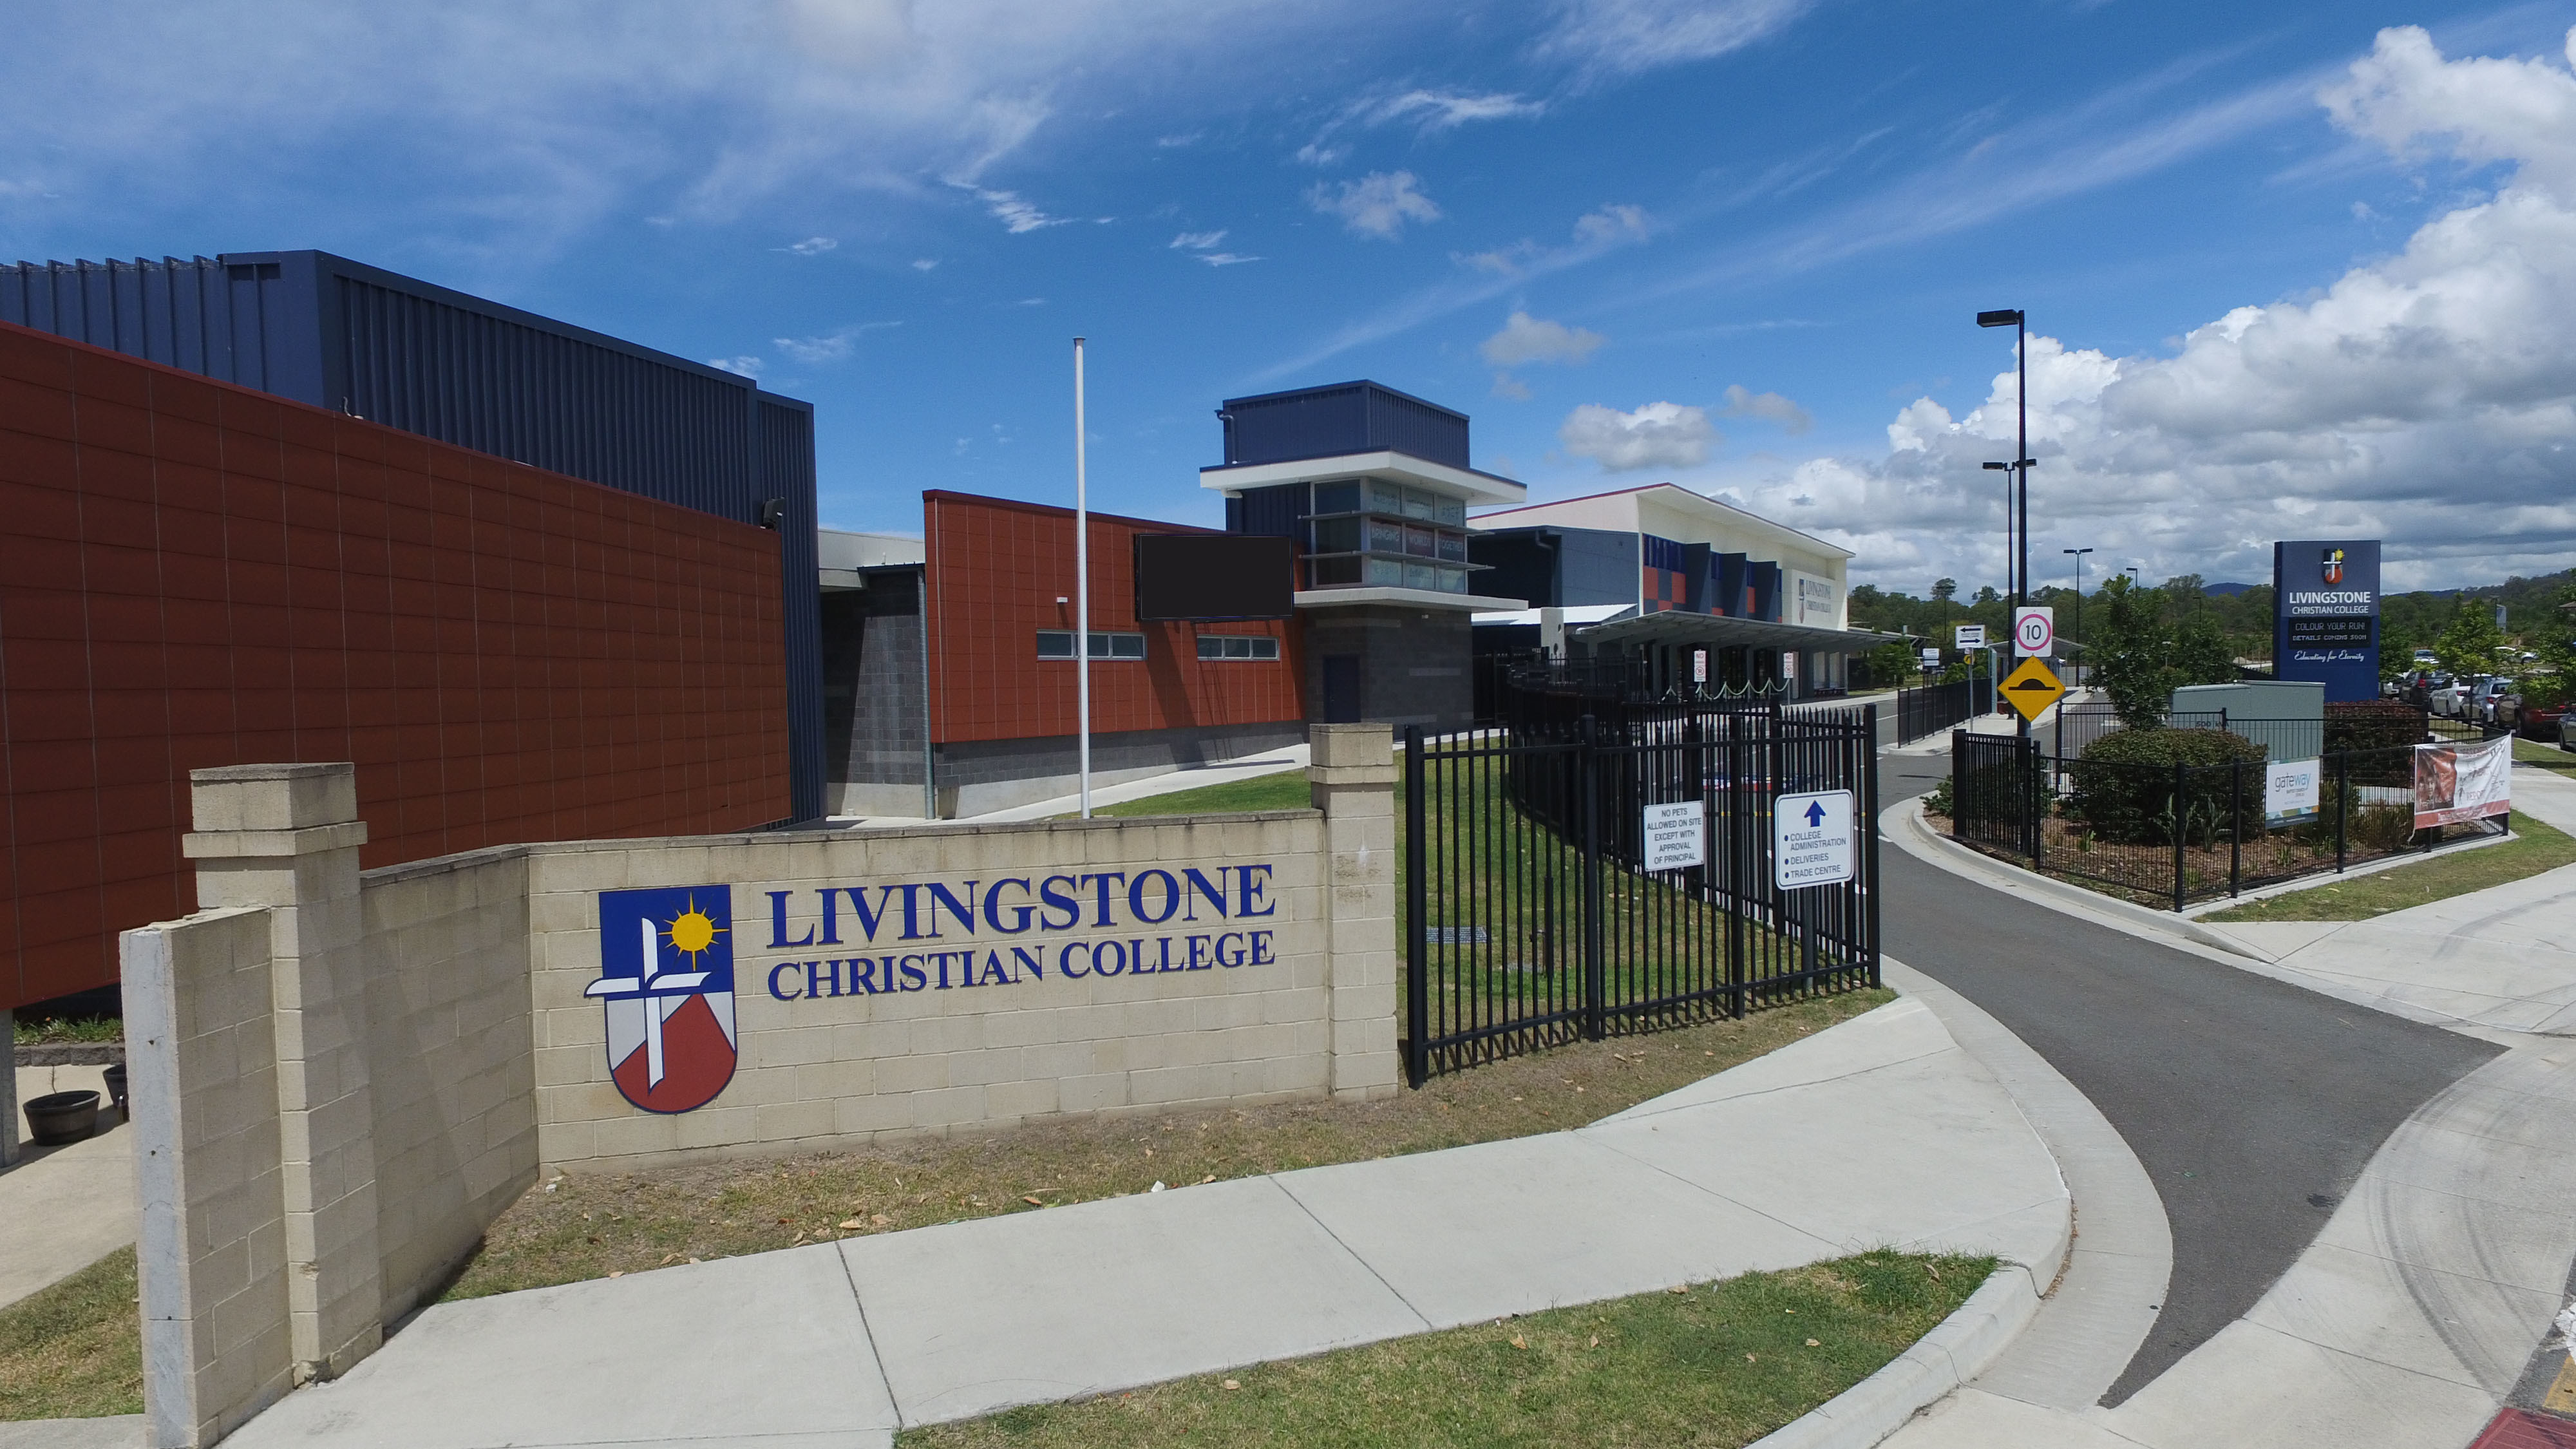 Livingstone Christian College   Welcome